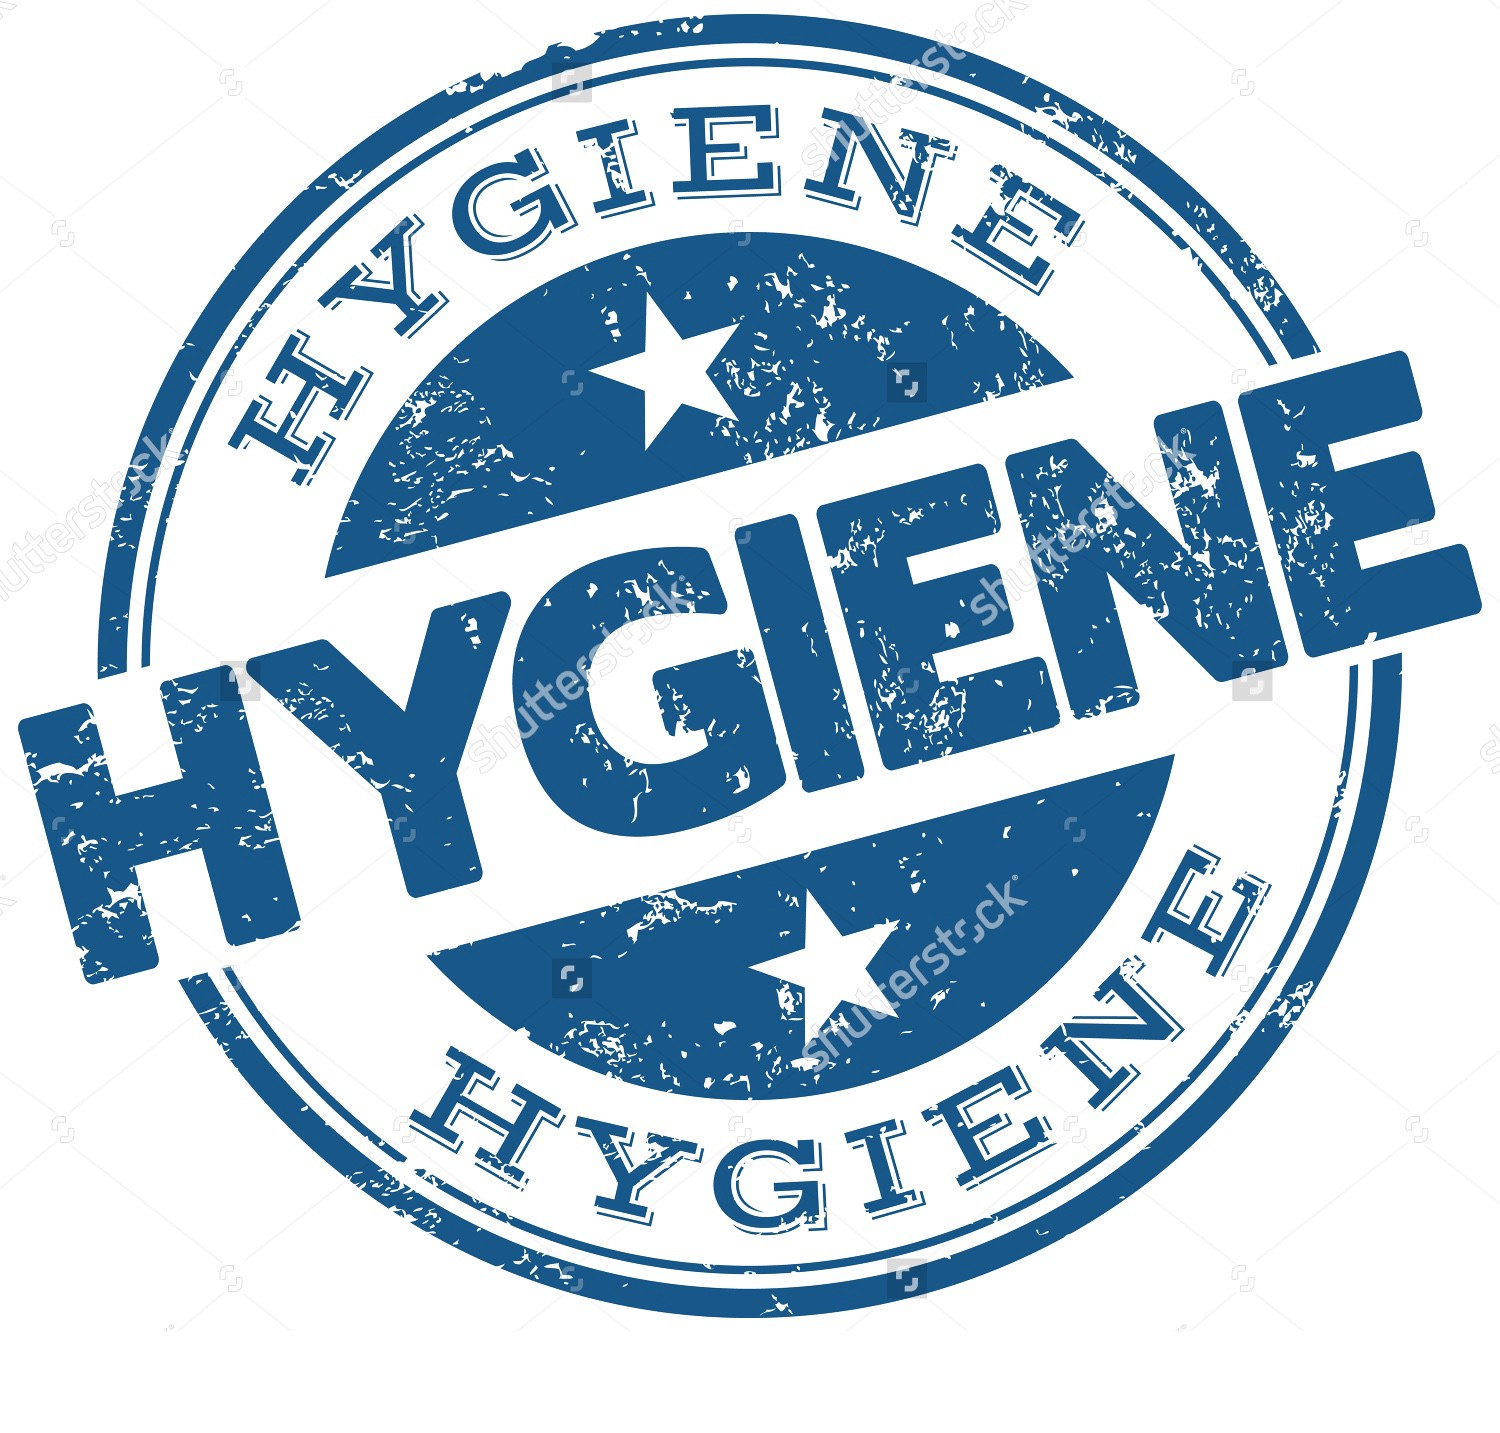 Should Hygiene Be A Compulsory Subject In Schools